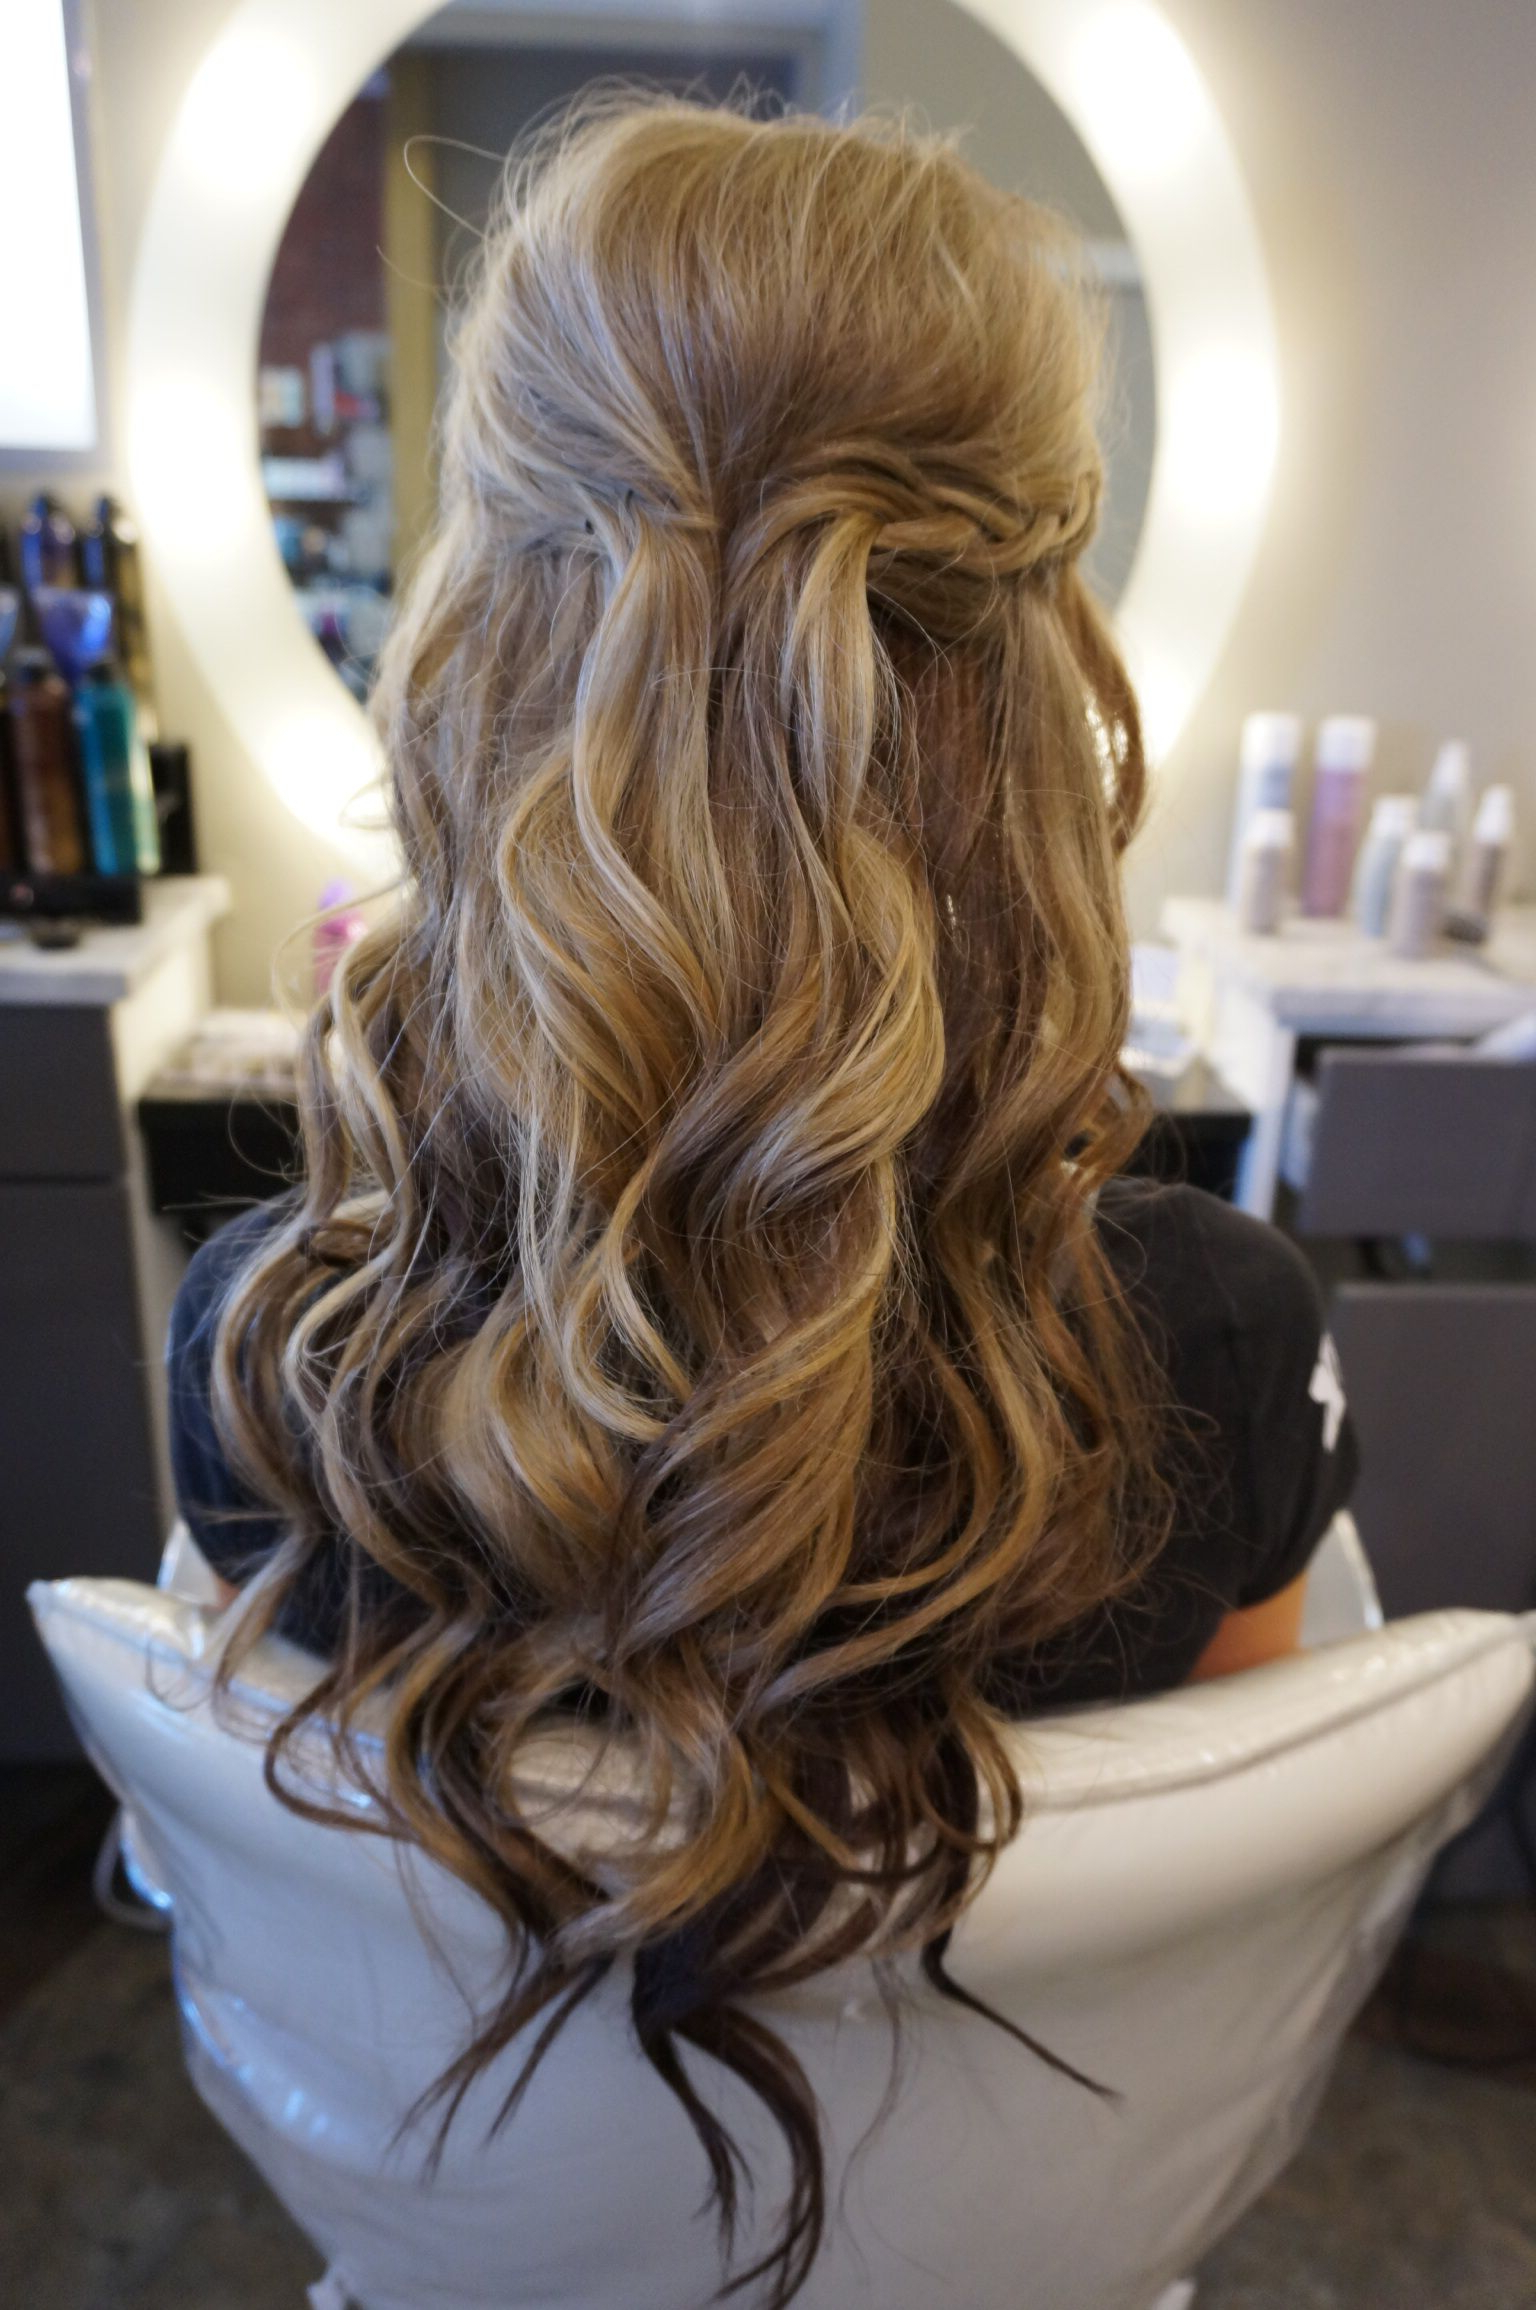 Preferred Loose Curls Hairstyles For Wedding Intended For Long Hair With Loose Curls Perfect Half Up Half Down Style! Follow (View 13 of 20)